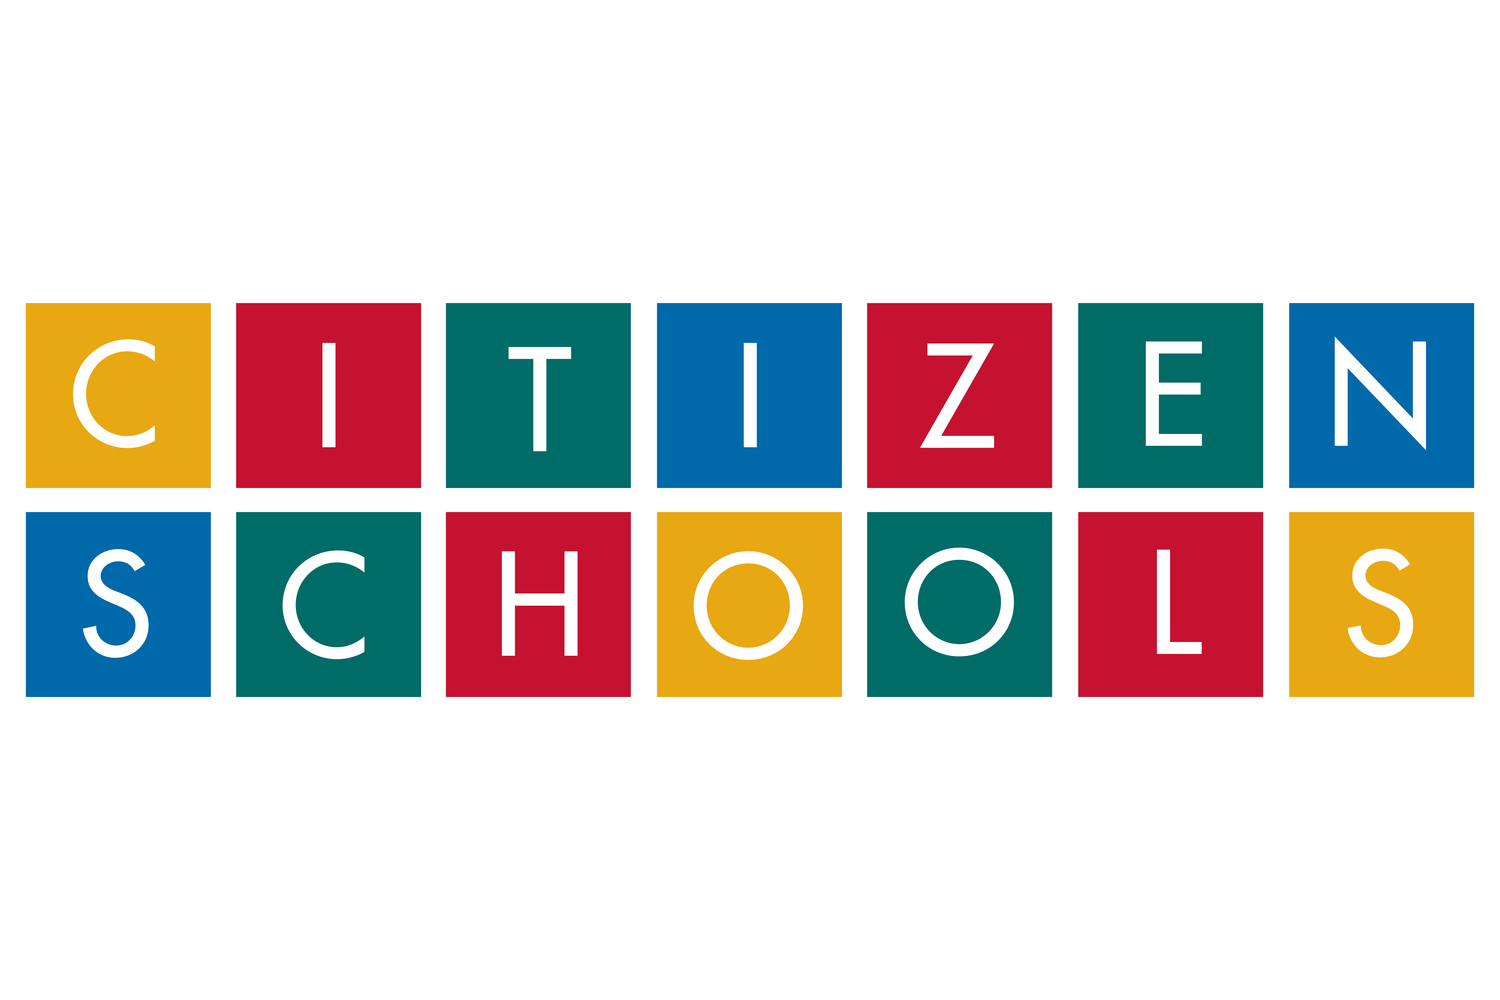 Citizen Schools